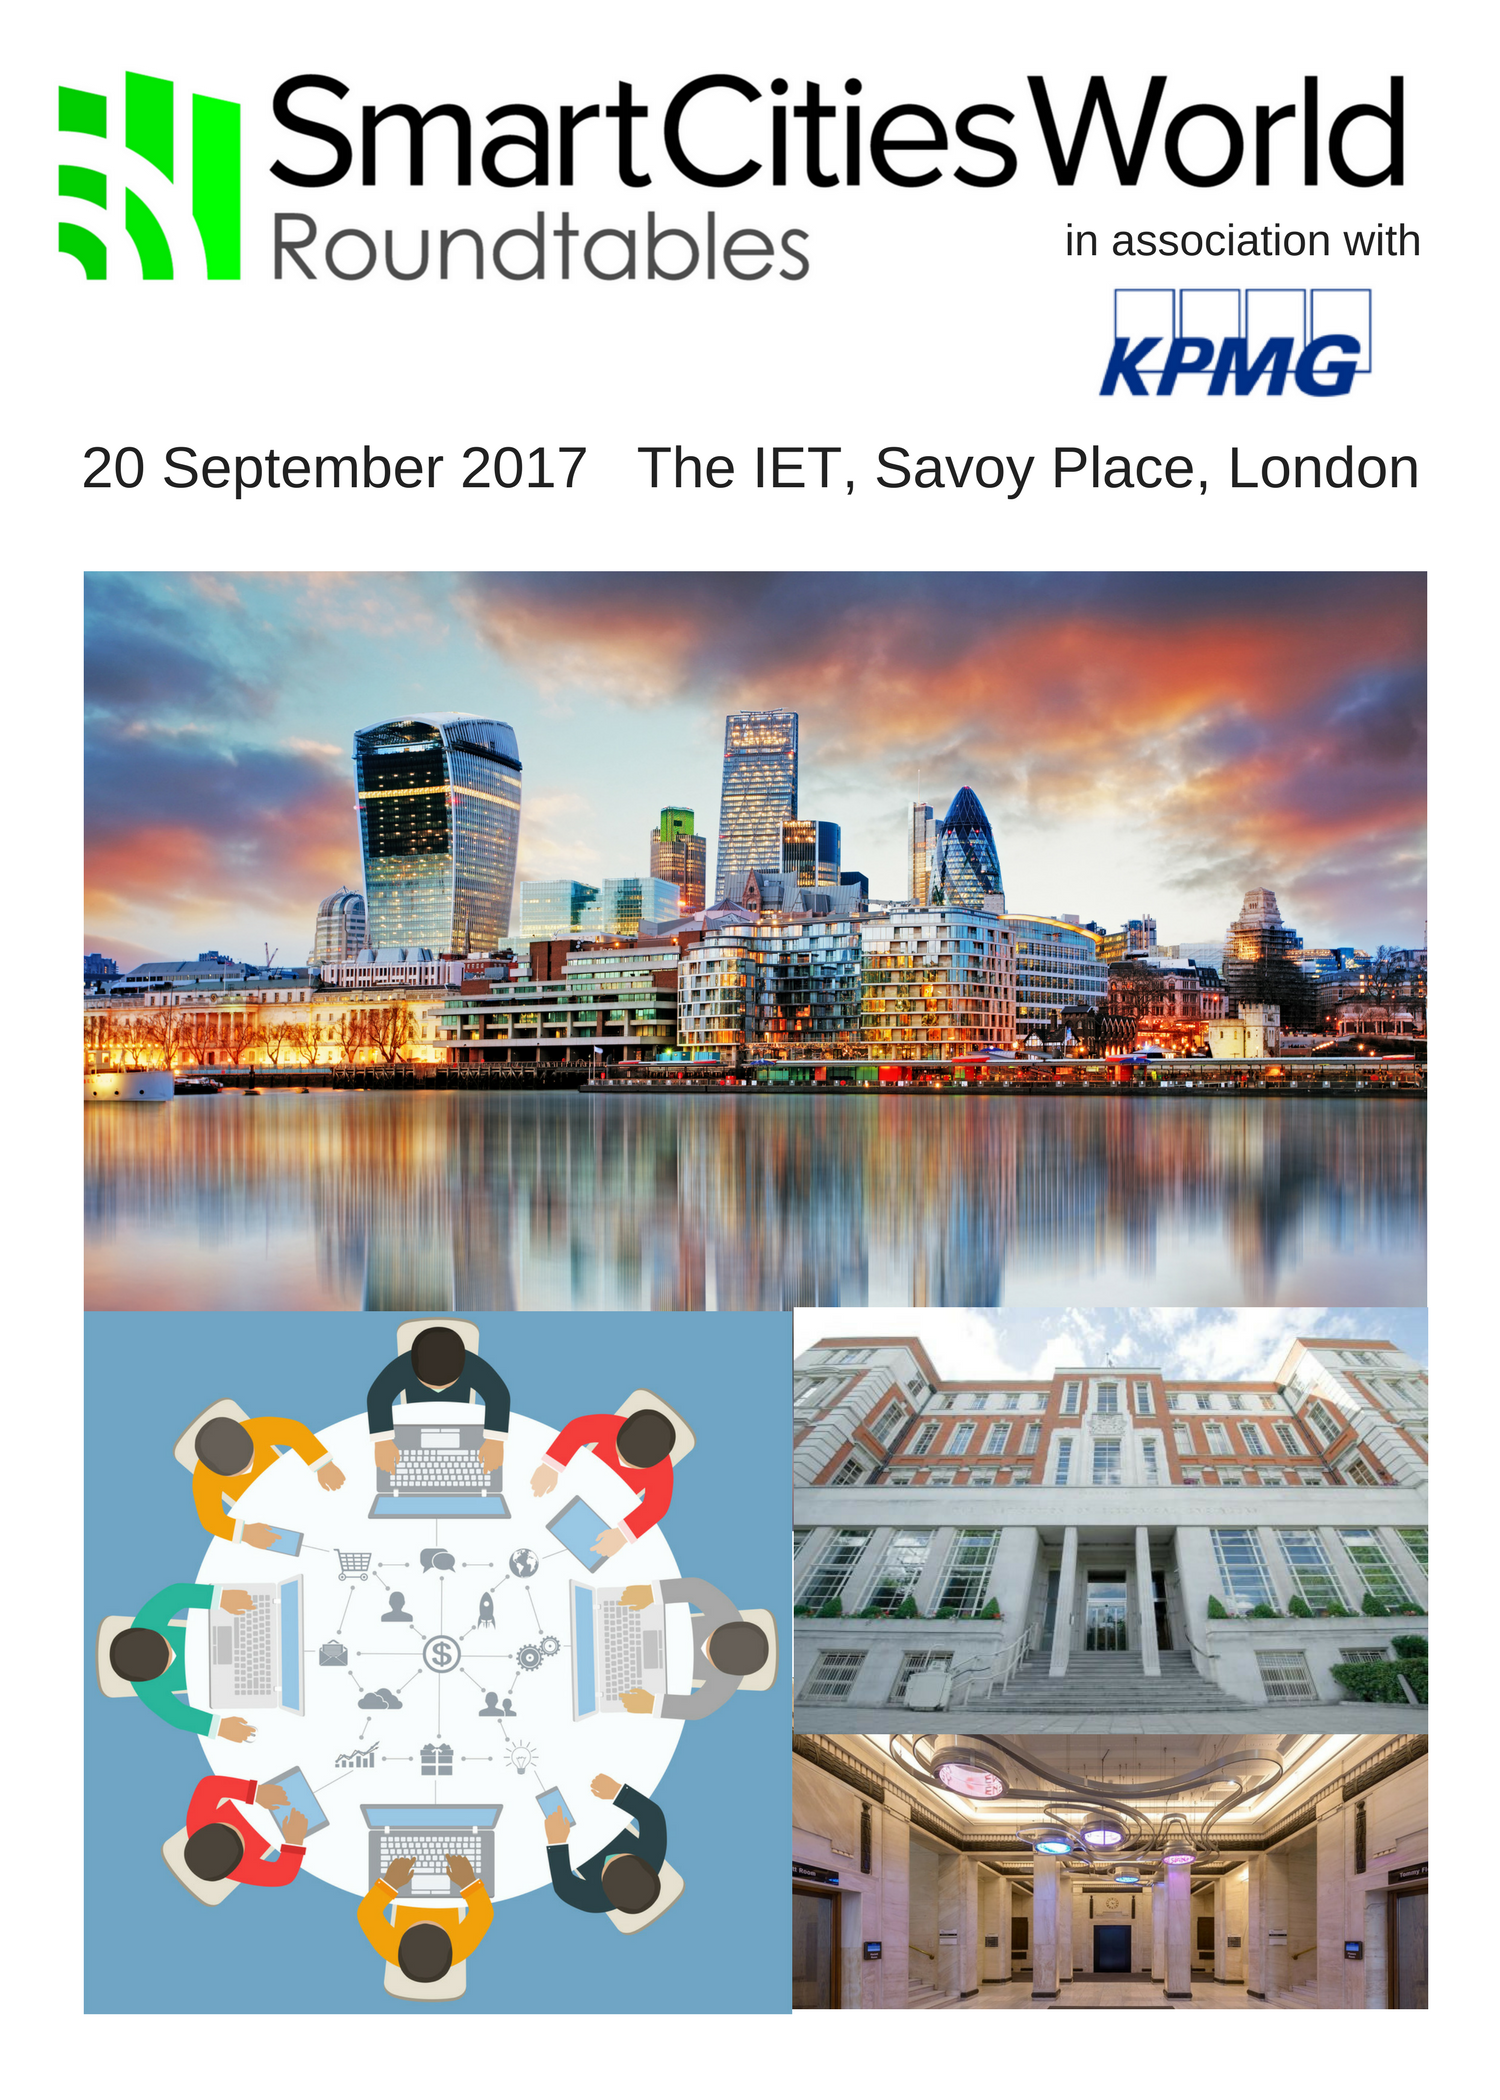 Smart Infrastructure Round Table Discussions - 20 September 2017